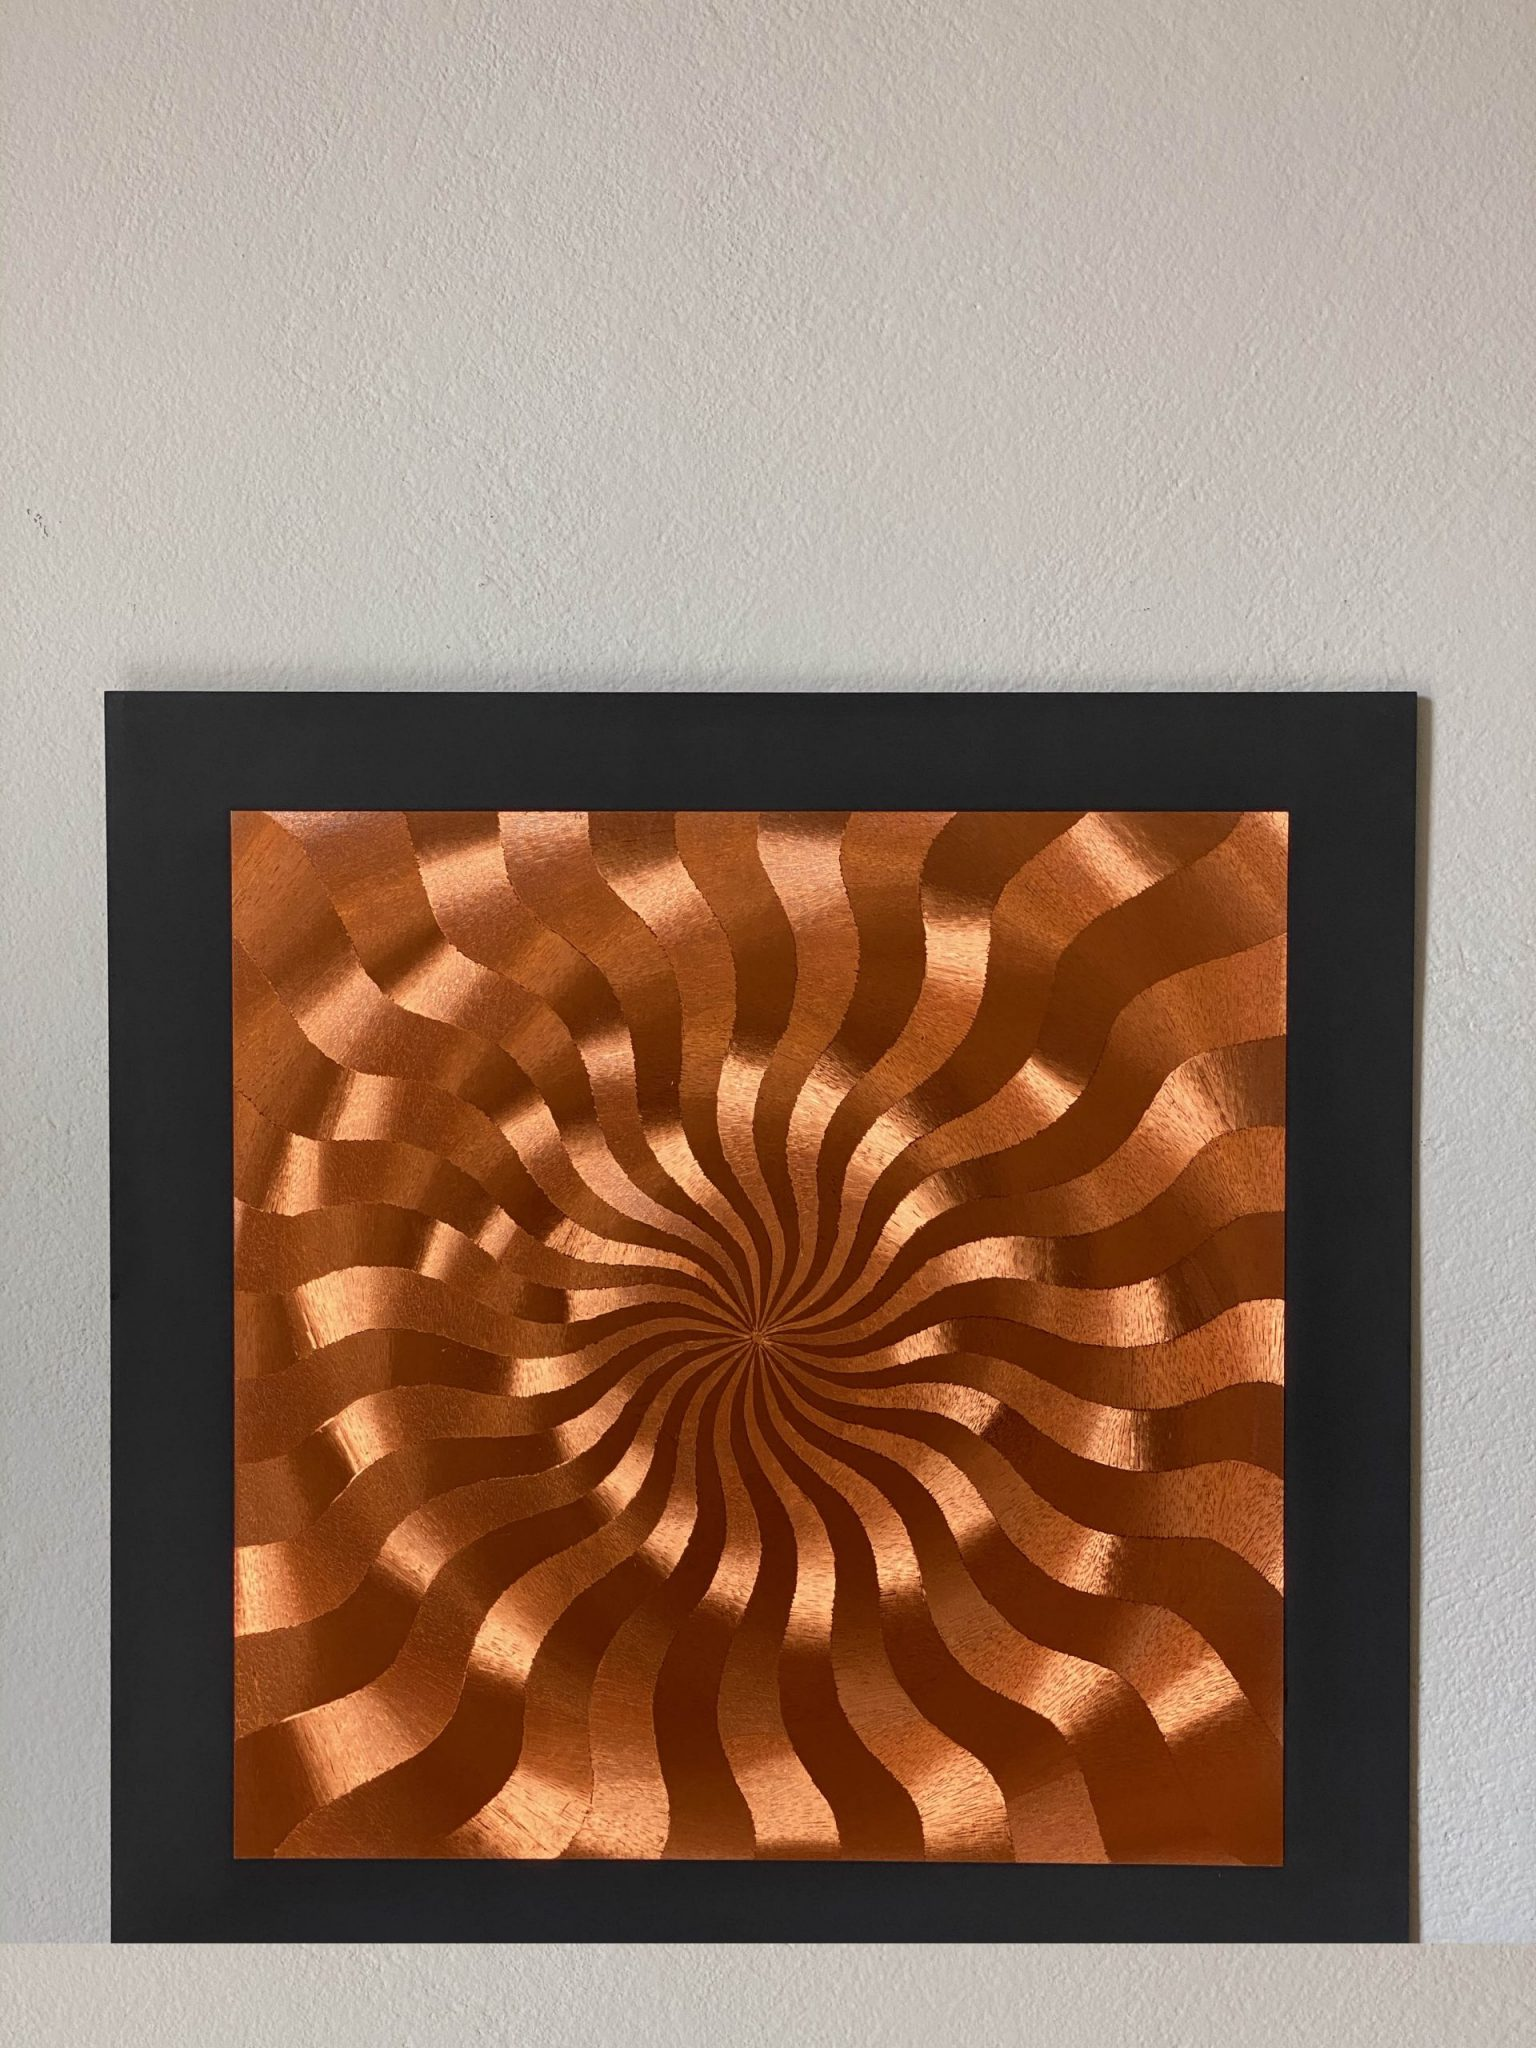 abstract-center-lines-bronze-40-x-40-gravure-foil-art-etching